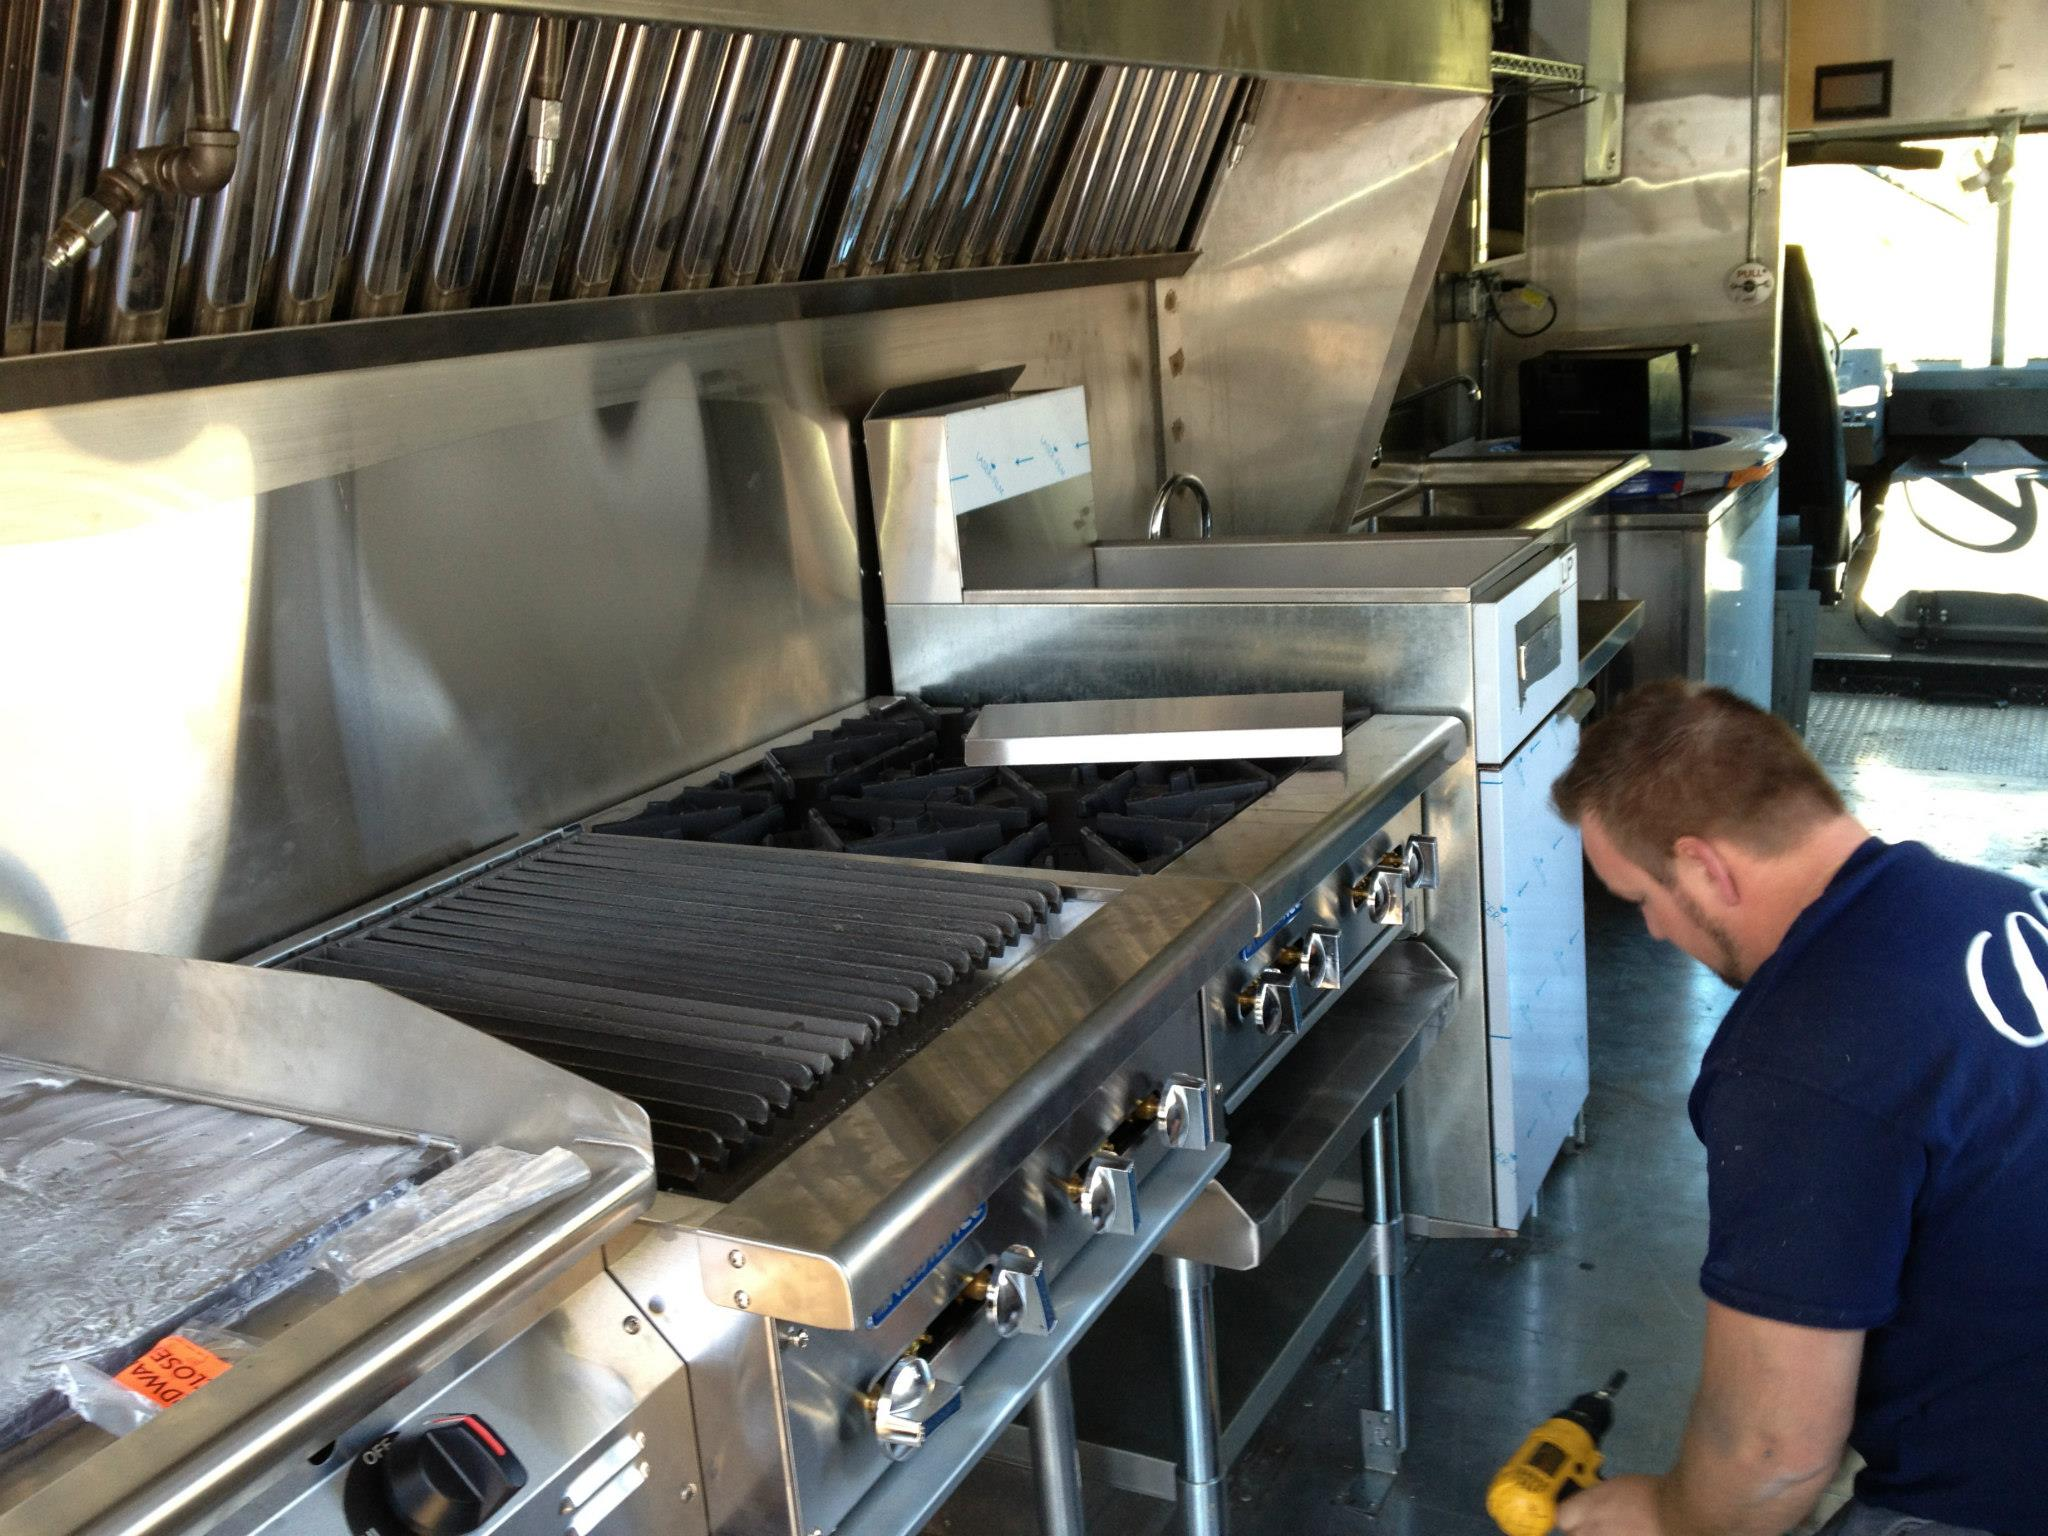 Workers On Wheels >> Culture: How To Design Your Food Truck Kitchen? - INSCMagazine